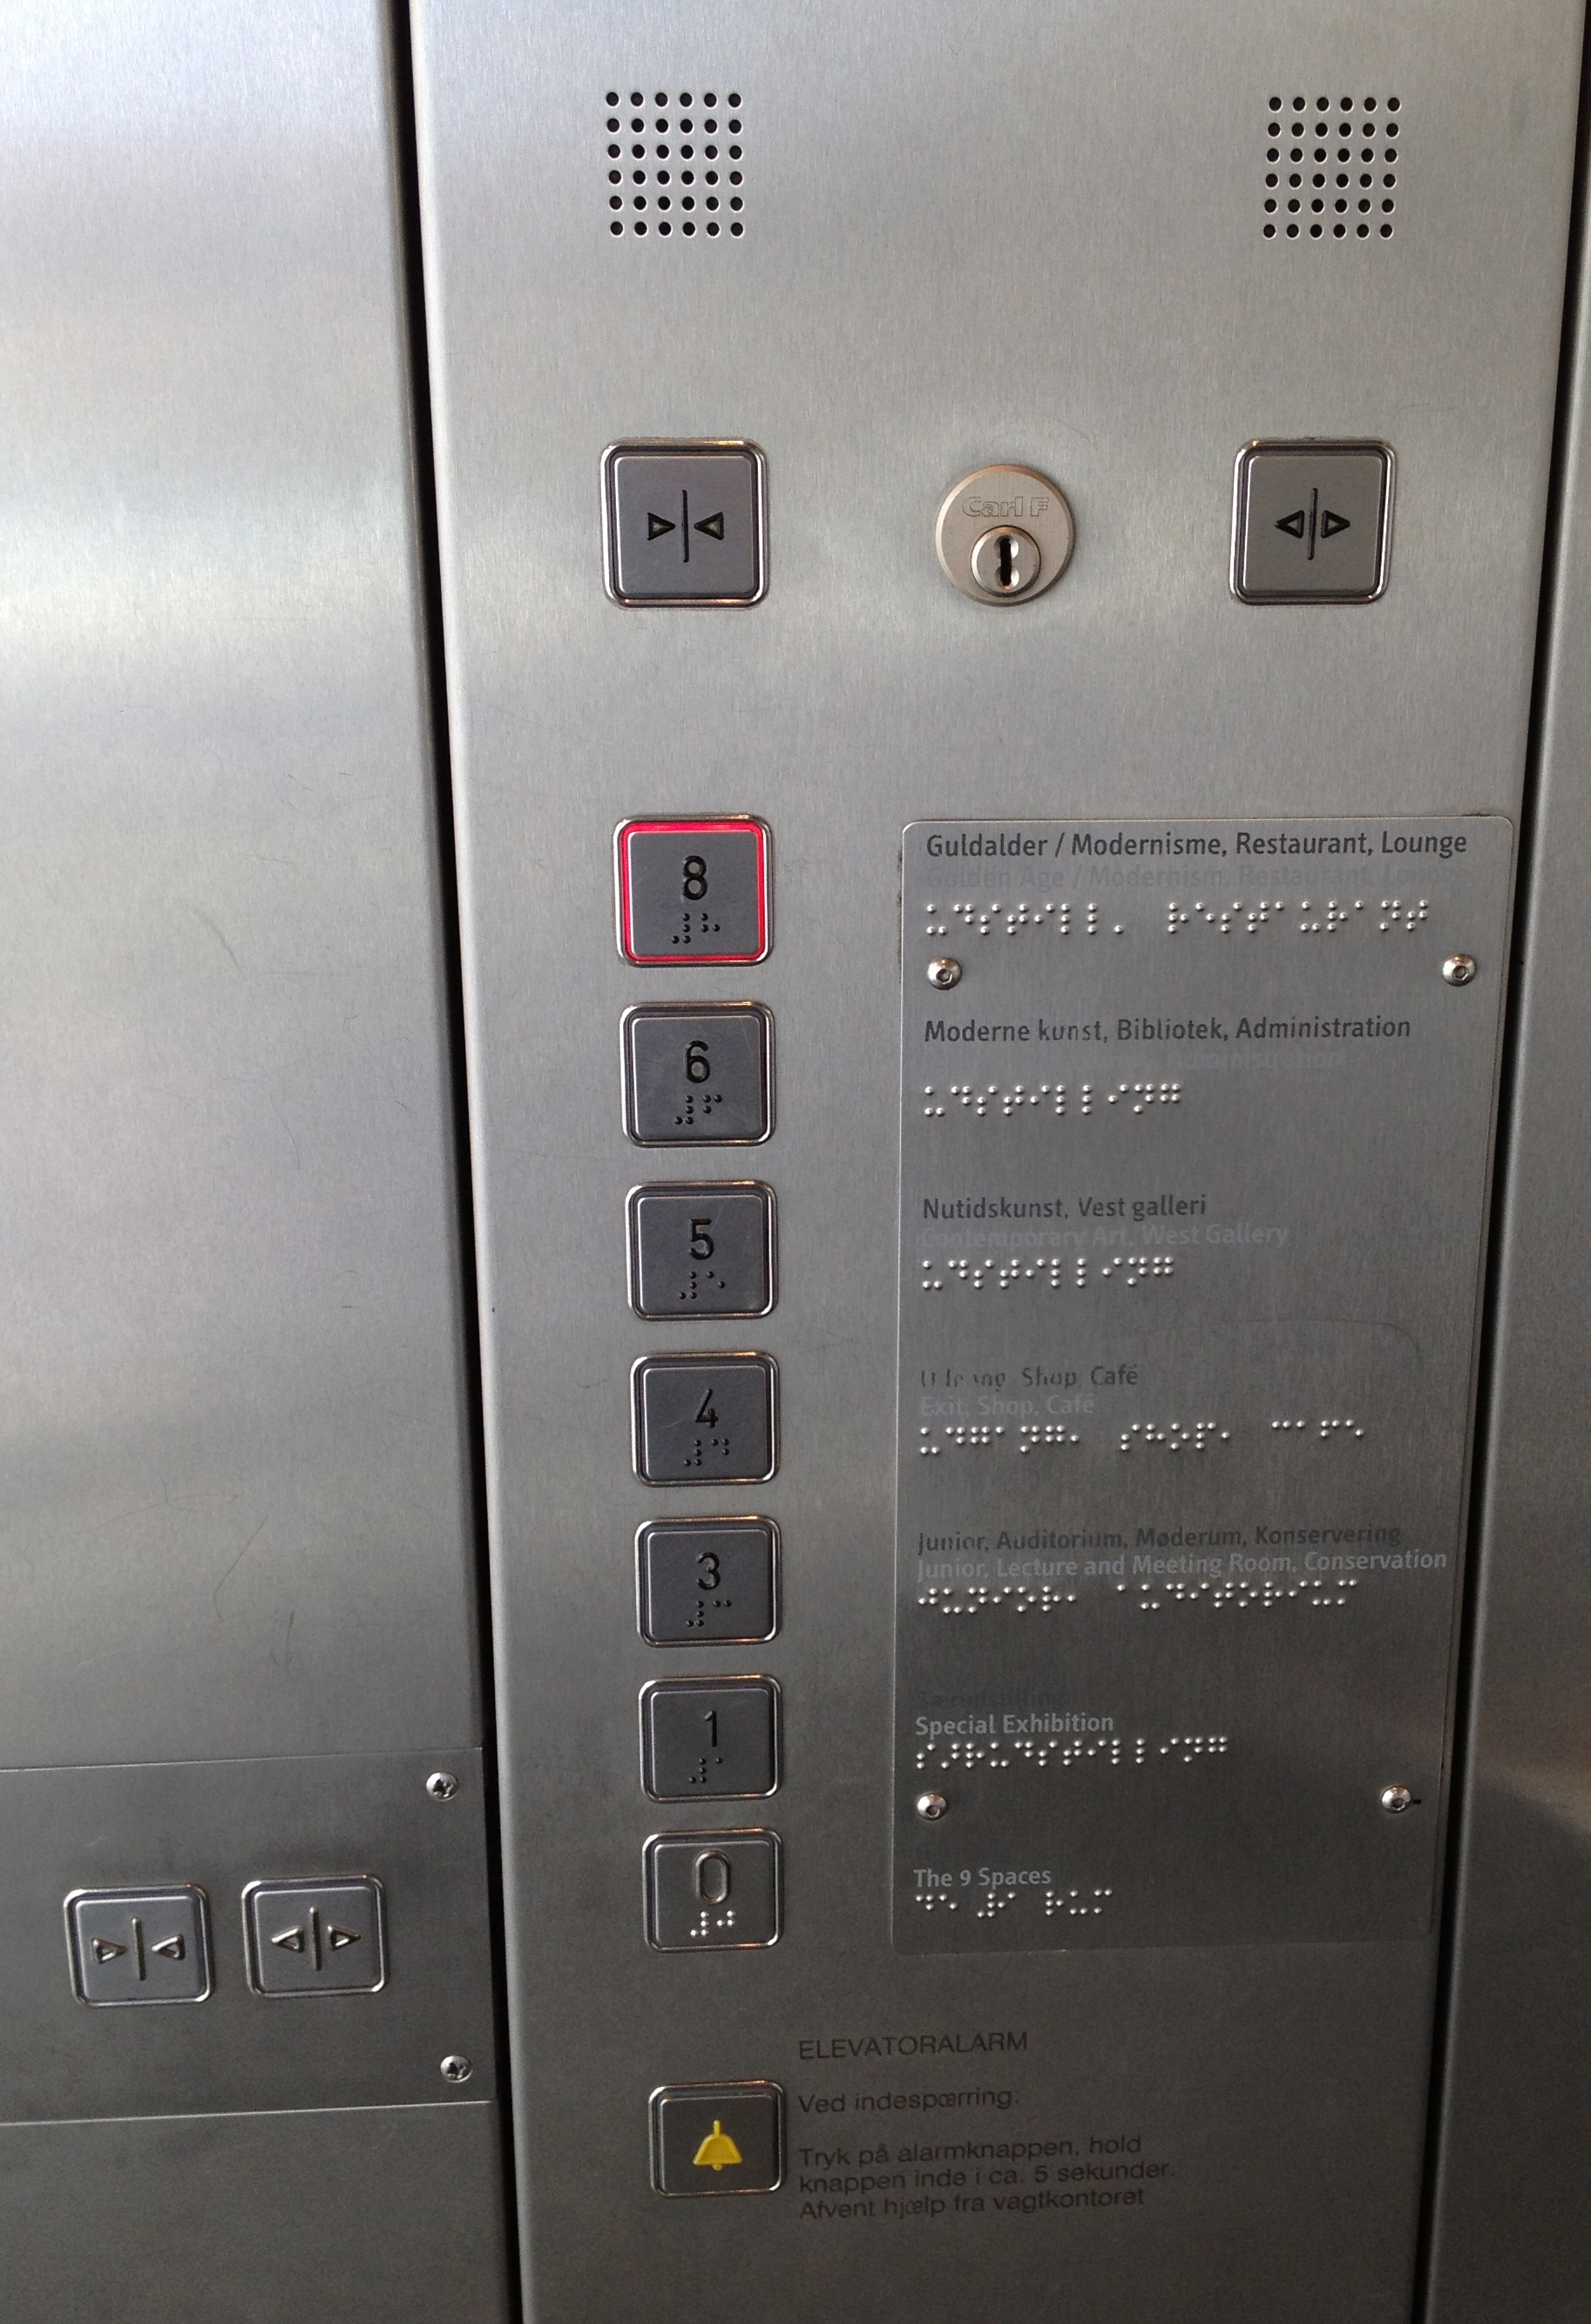 File Analysing Elevator Control Buttons 7771545062 Jpg